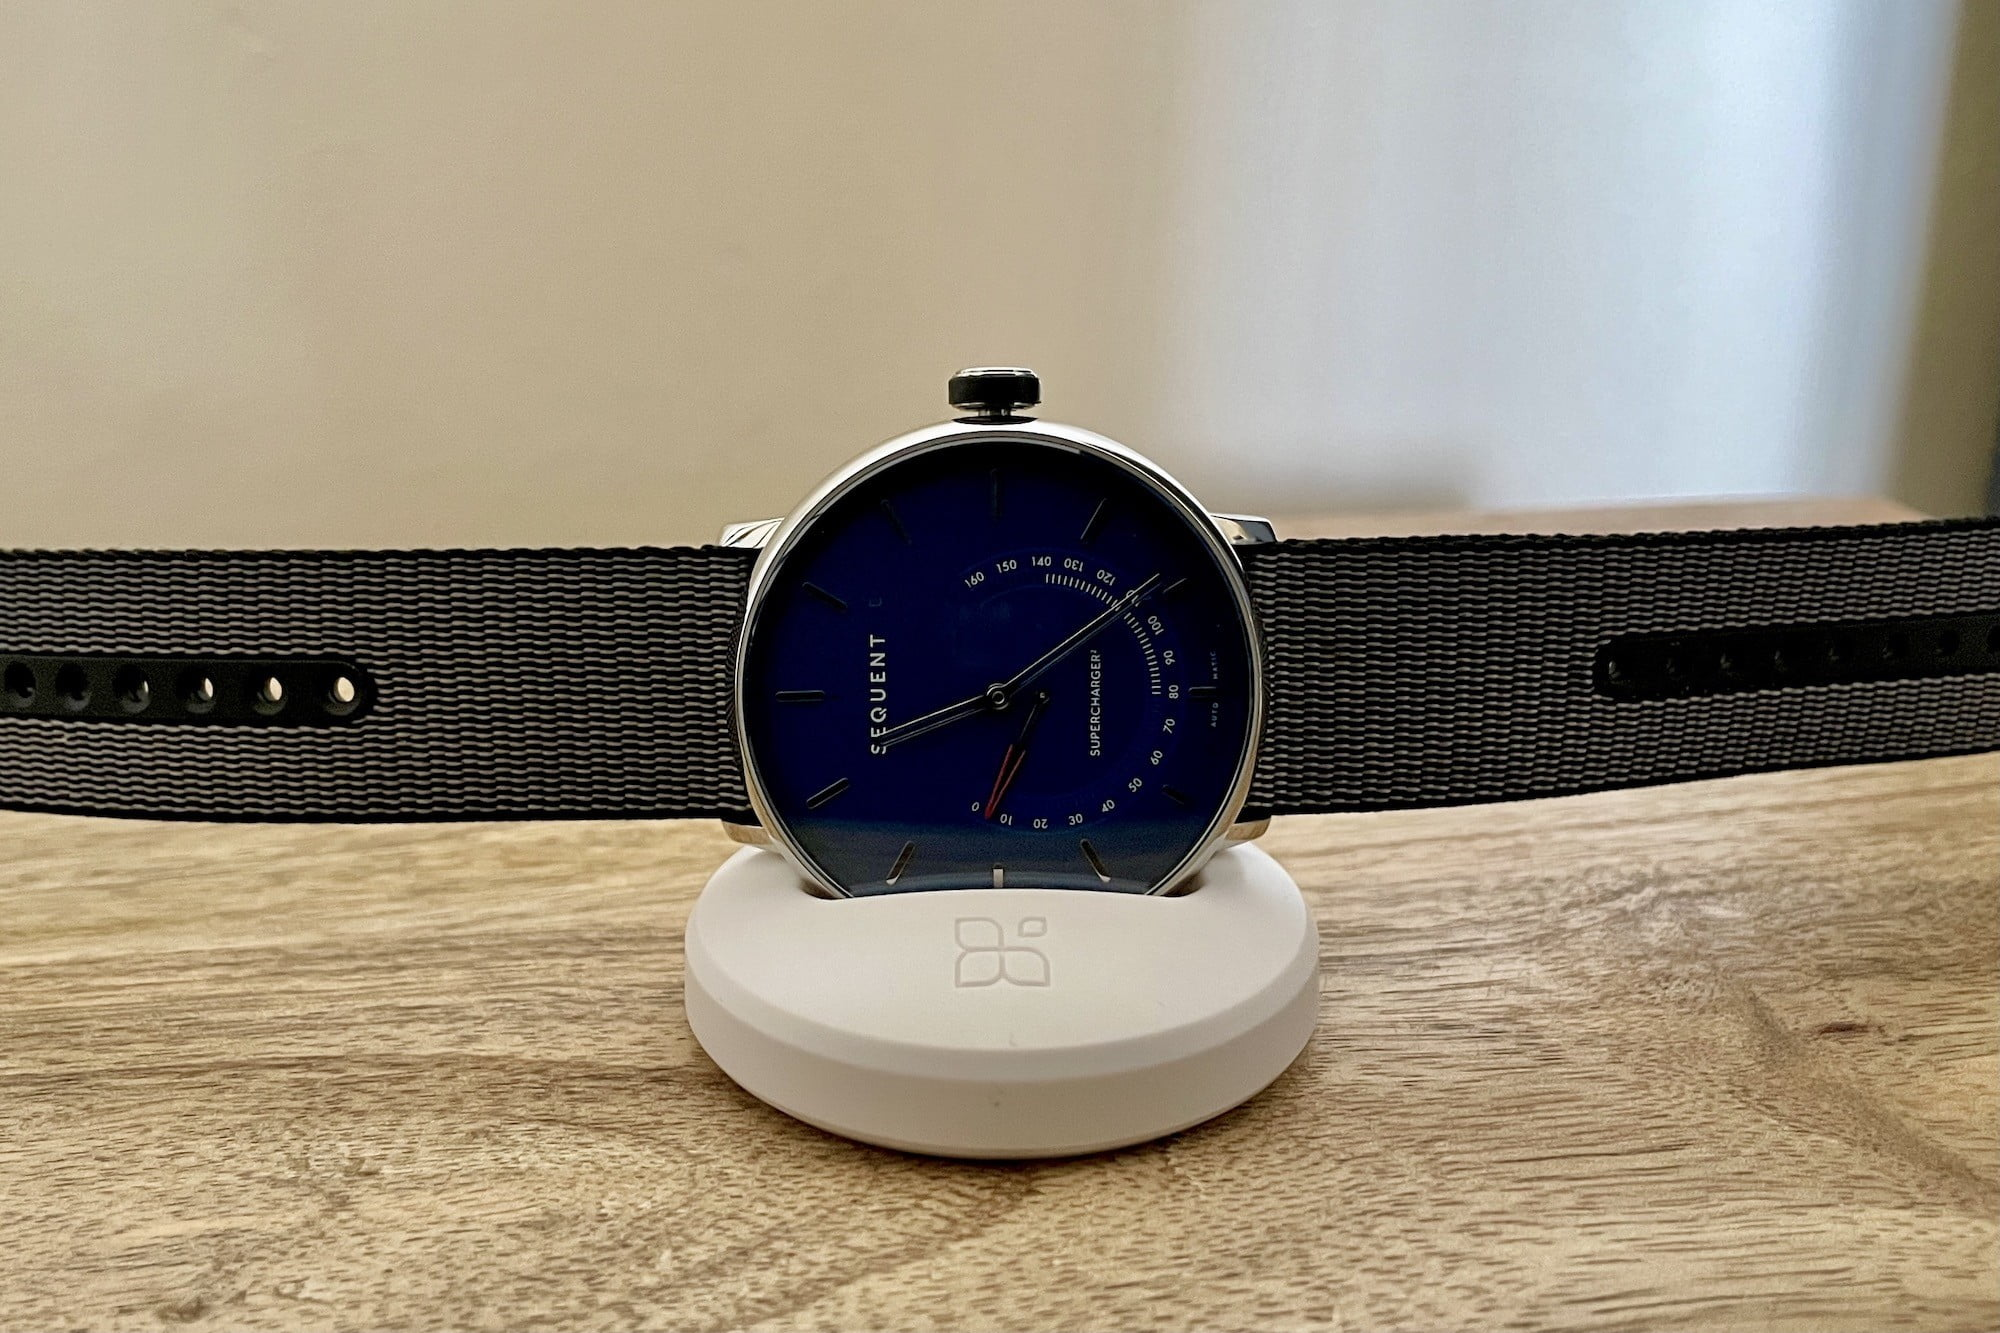 Sequent SuperCharger watch on its charging plinth.